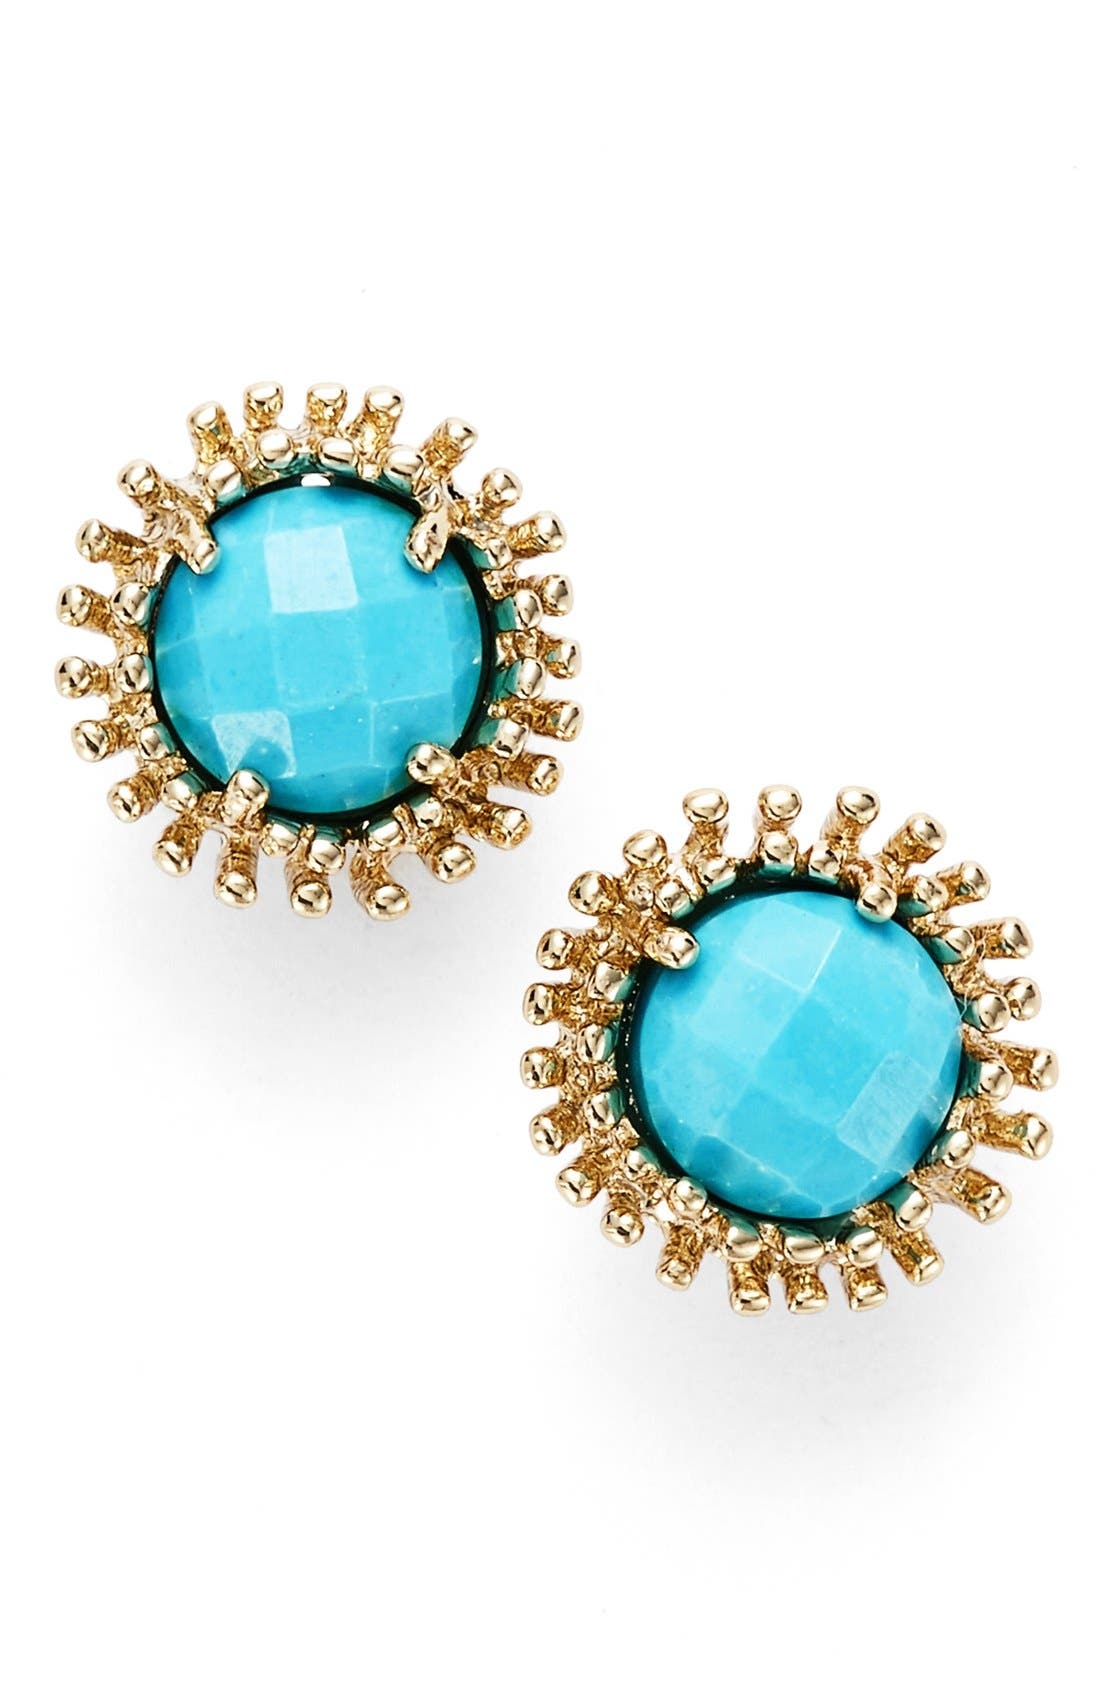 'Carly' Stud Earrings,                             Main thumbnail 1, color,                             Turquoise